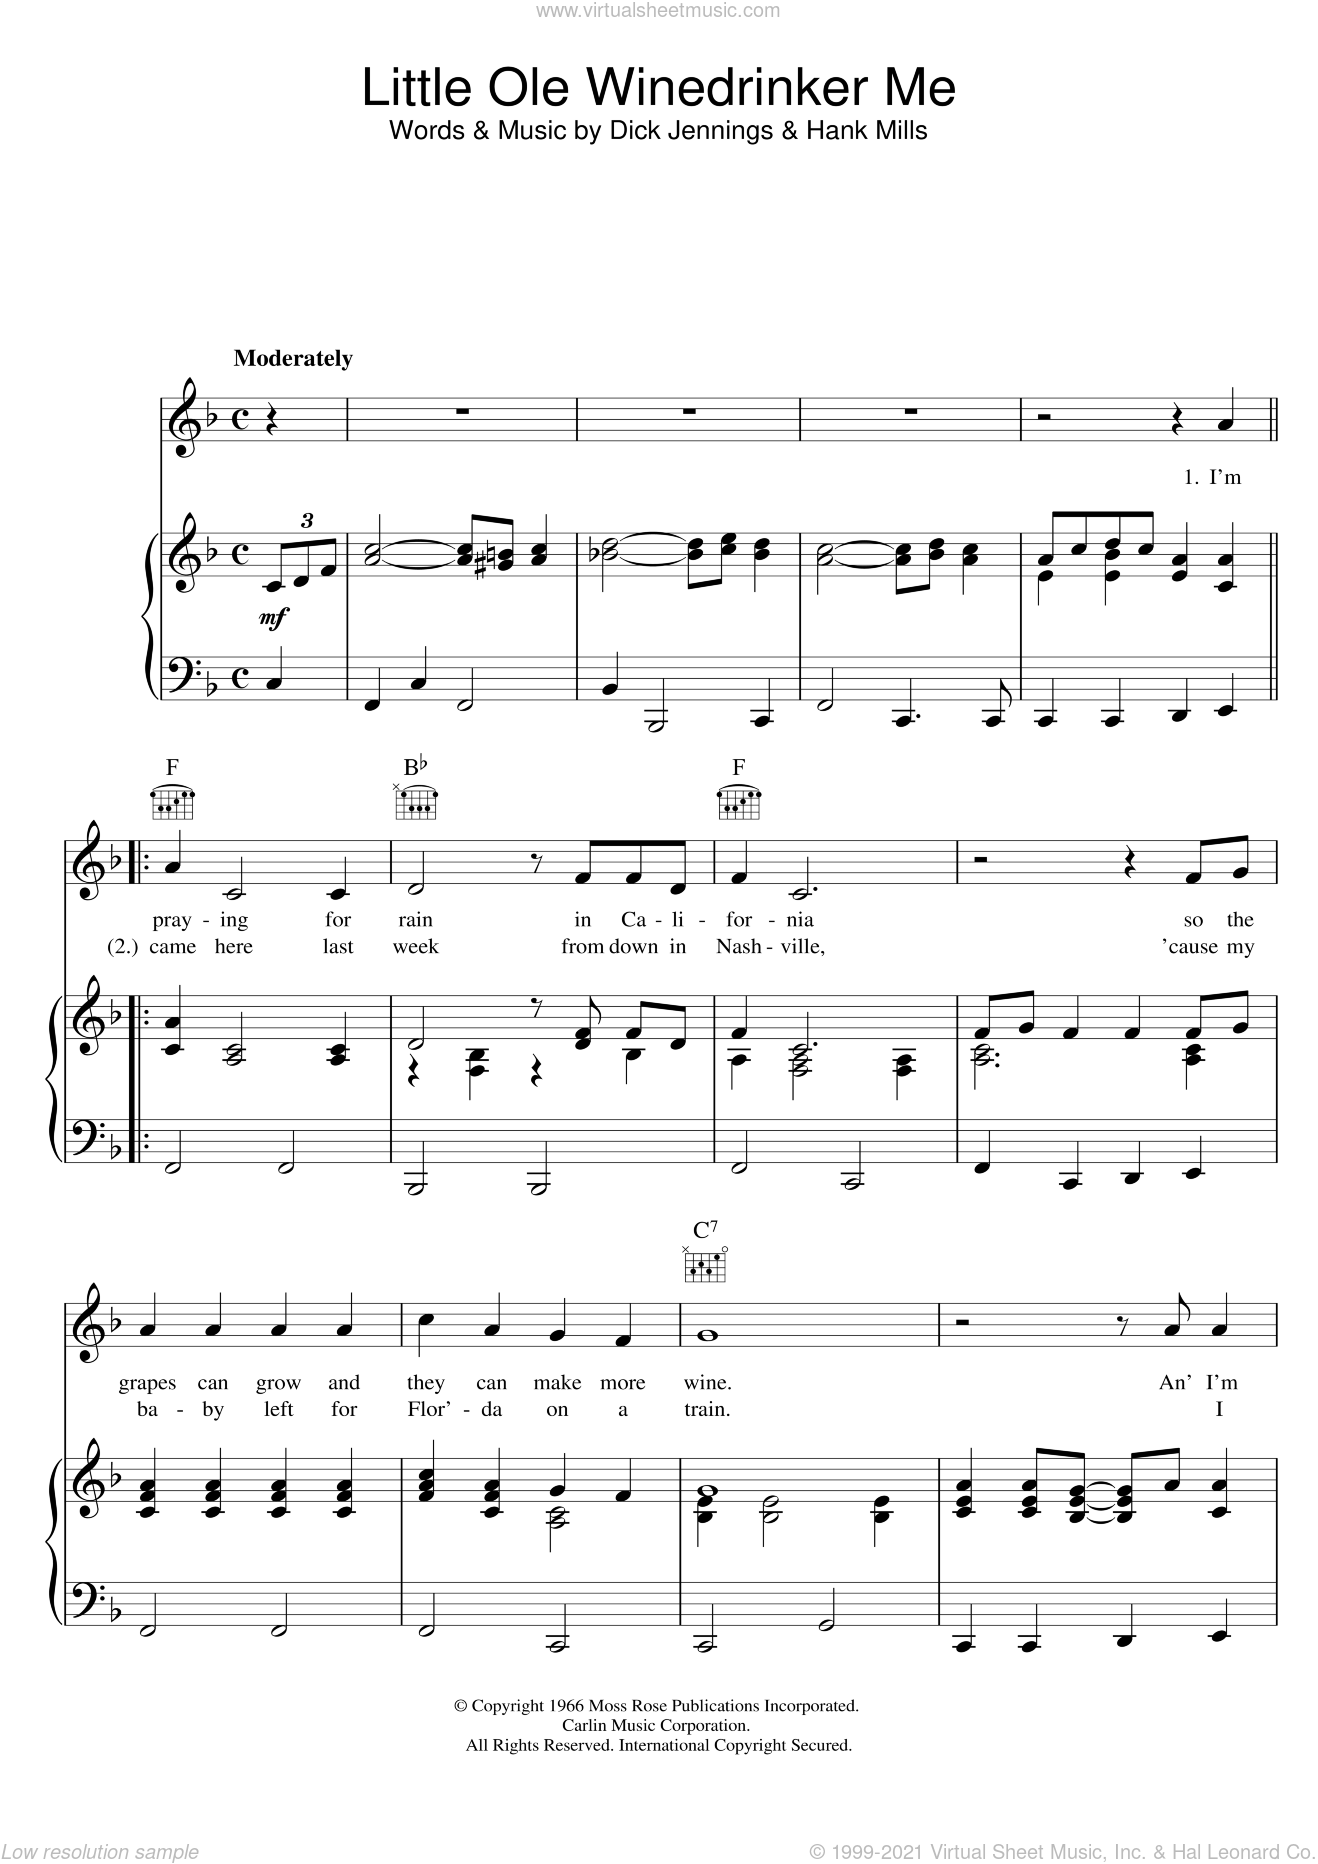 Little Ole Winedrinker Me sheet music for voice, piano or guitar by Dean Martin, Dick Jennings and Hank Mills, intermediate skill level